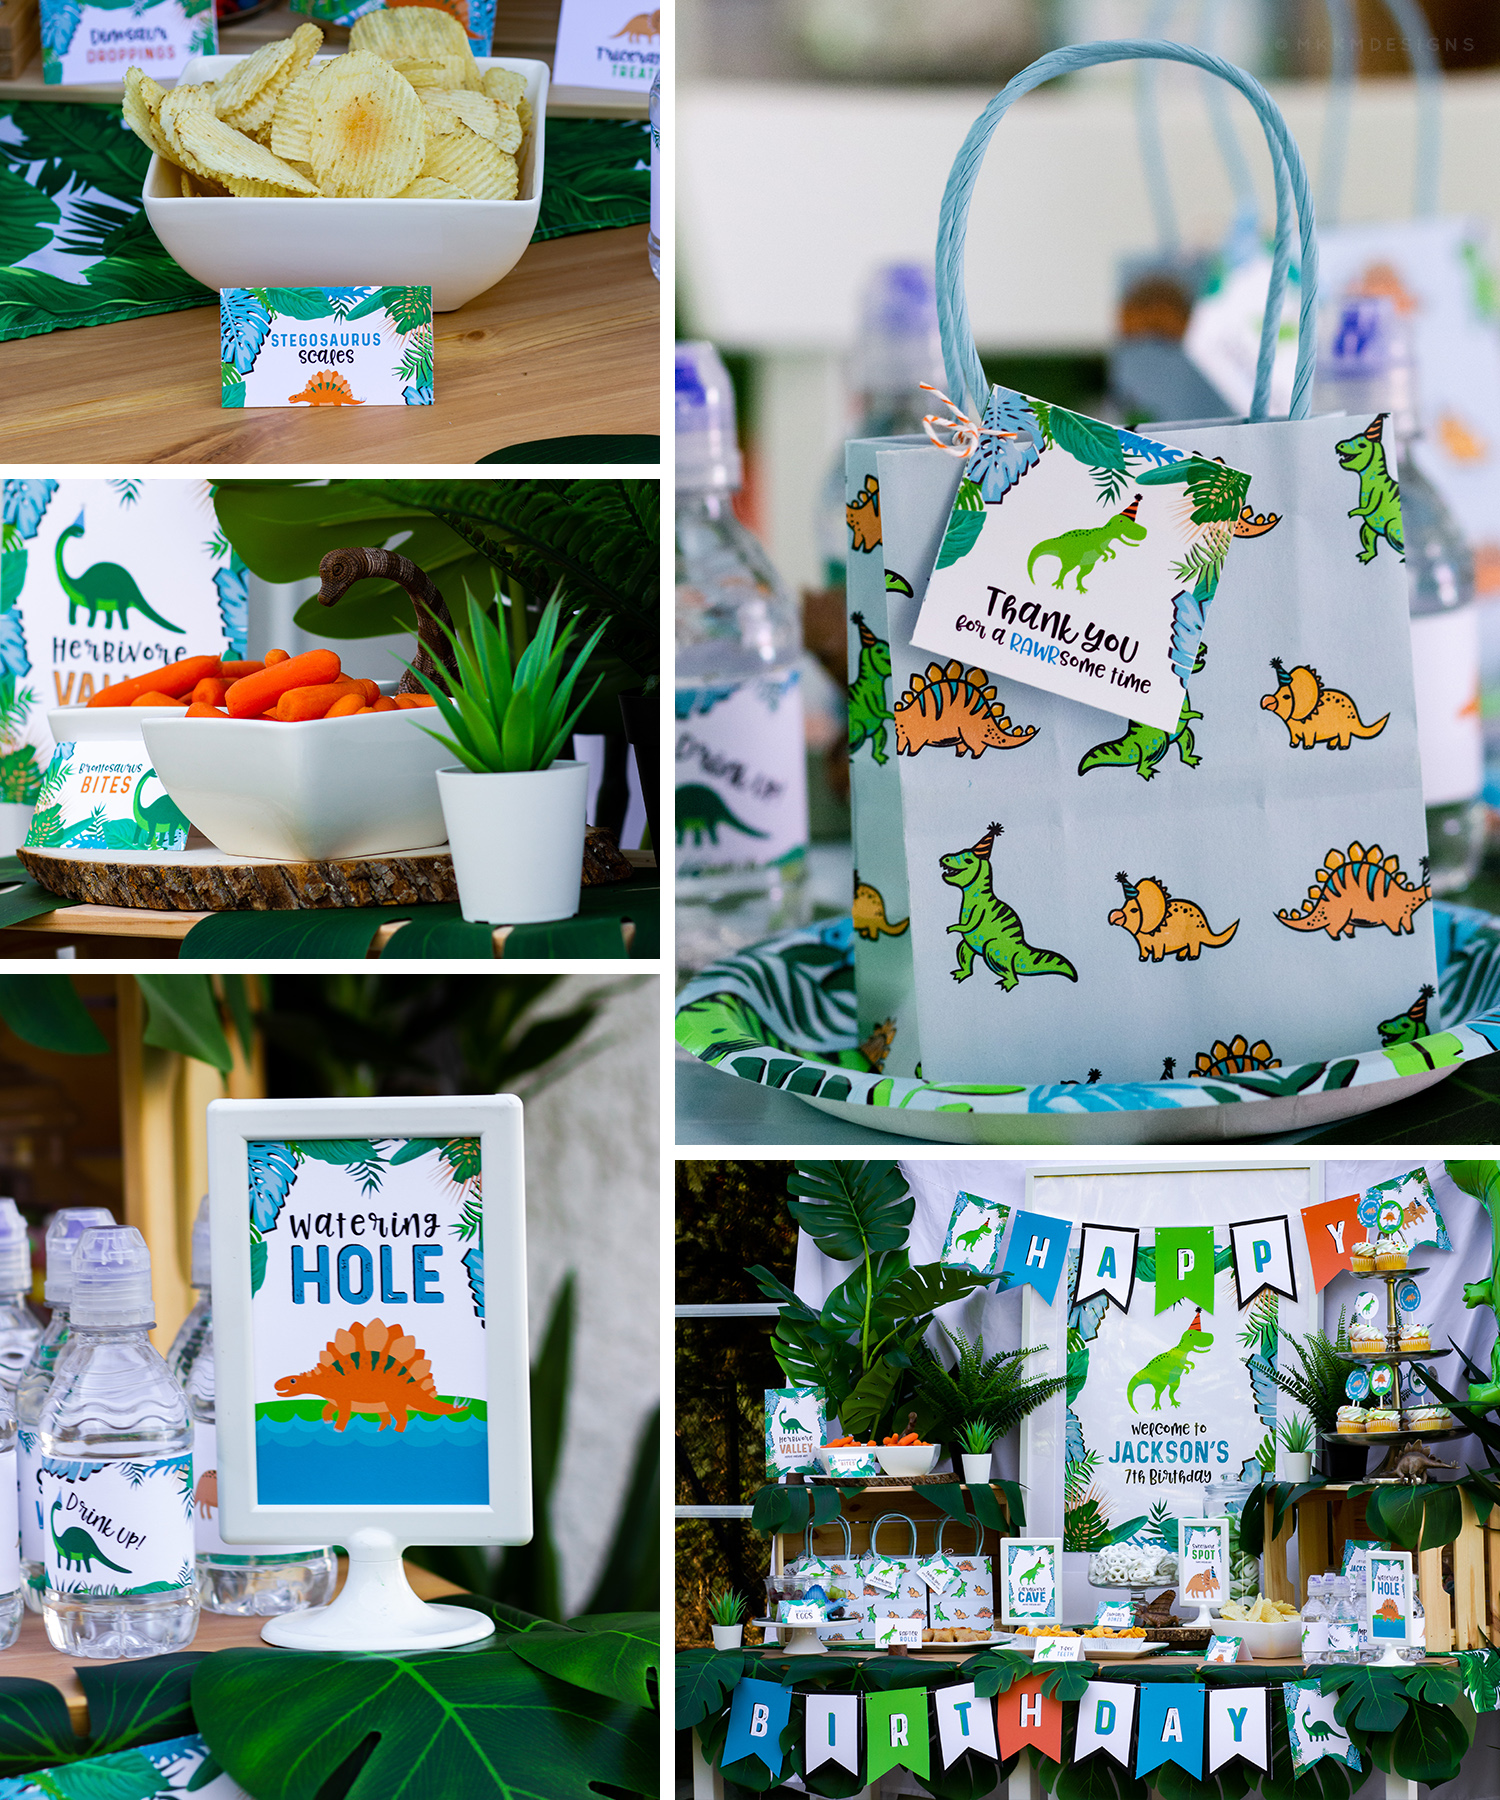 Stomp and roar at a bright tropical dinosaur party. Check out all of the party photos and get free printable goodie bag toppers. // mkkmdesigns